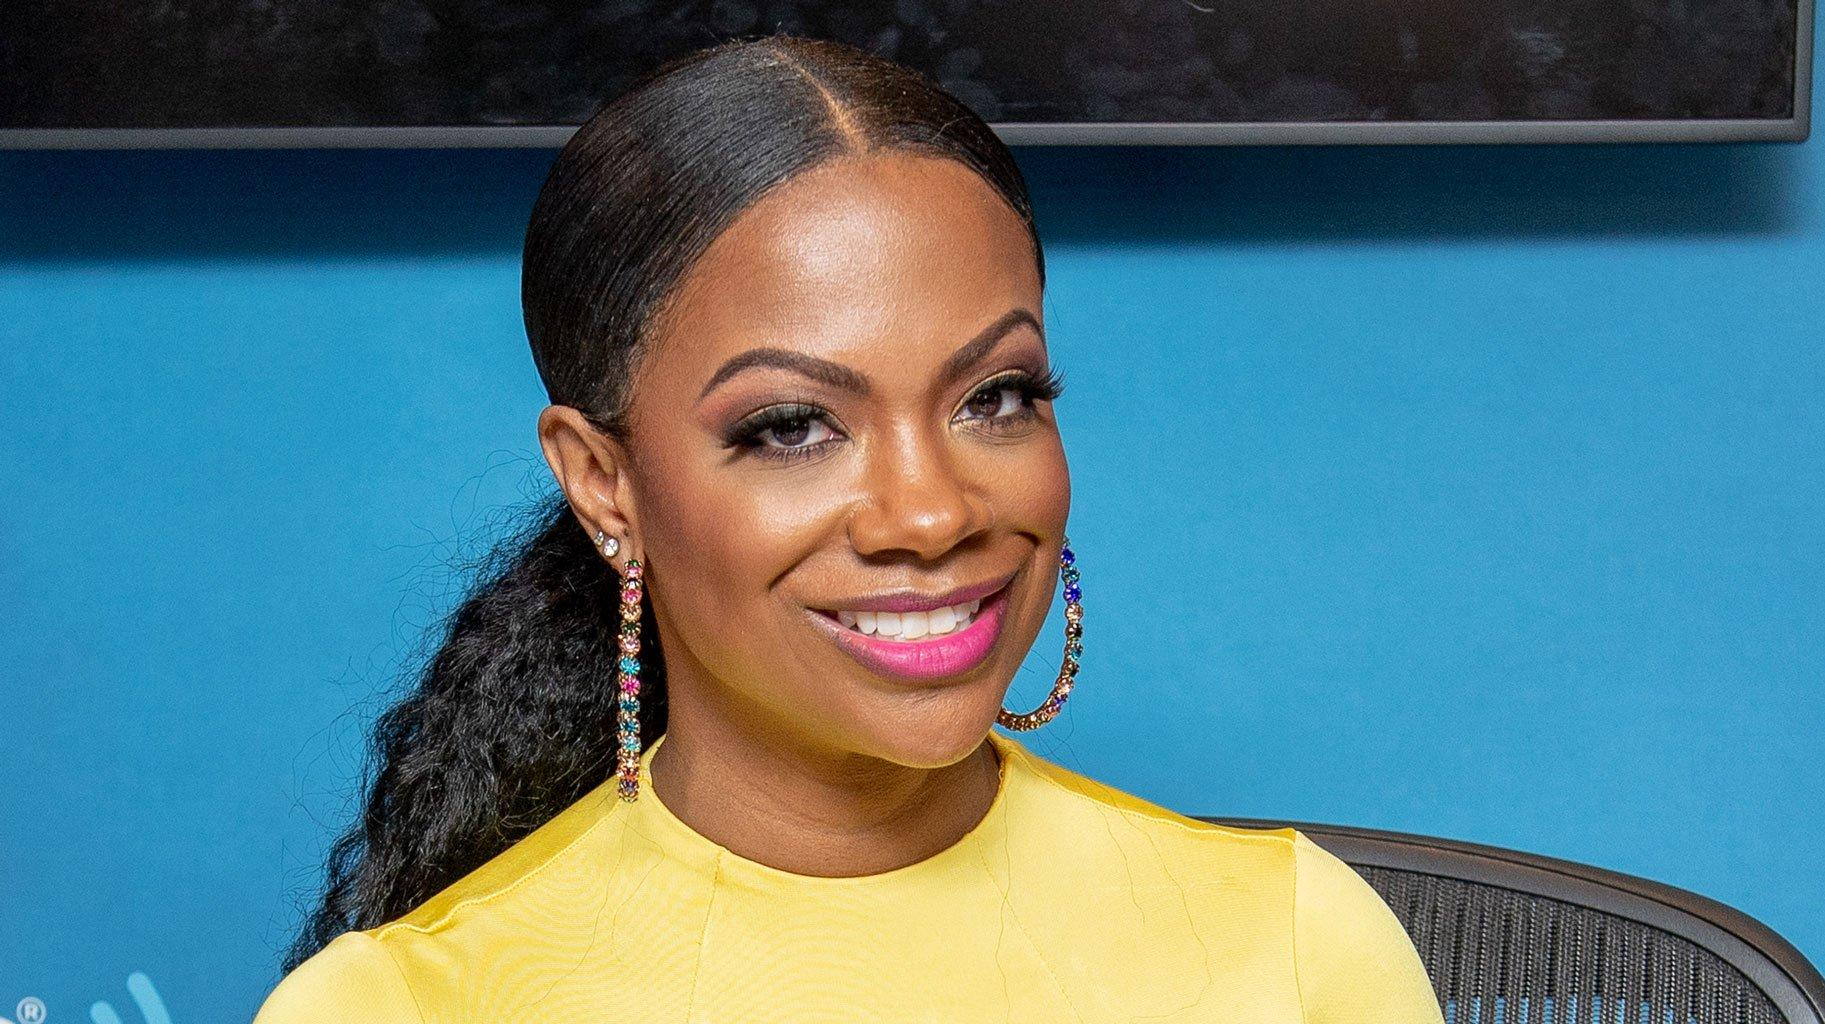 Kandi Burruss Also Addresses The RHOA Reunion